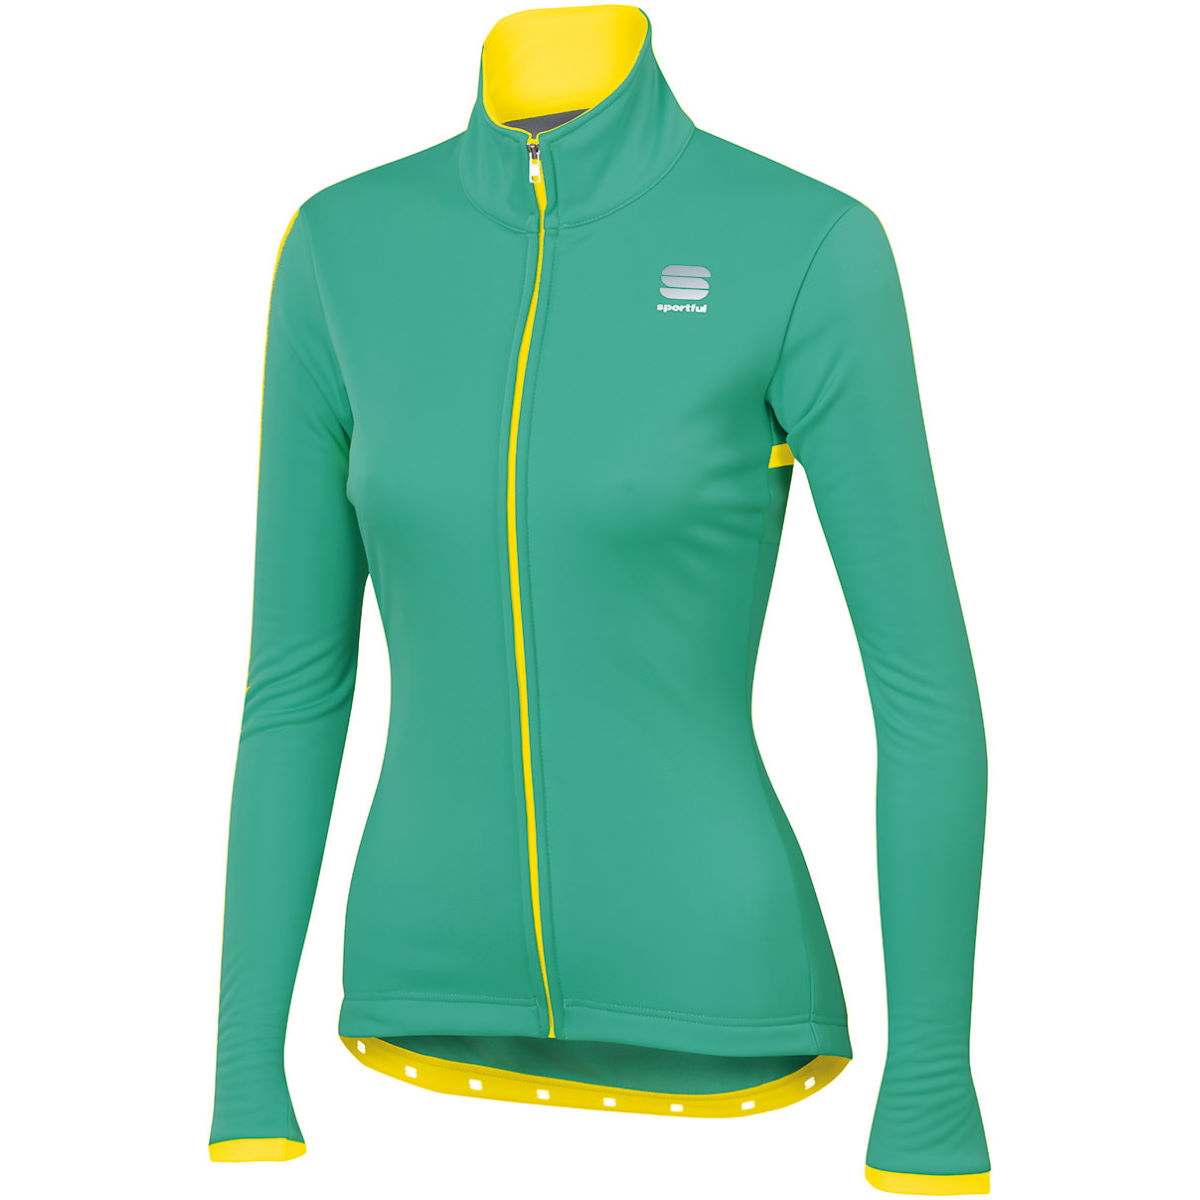 Veste Femme Sportful Luna Softshell - S Waterfall/Yellow Flu Vestes